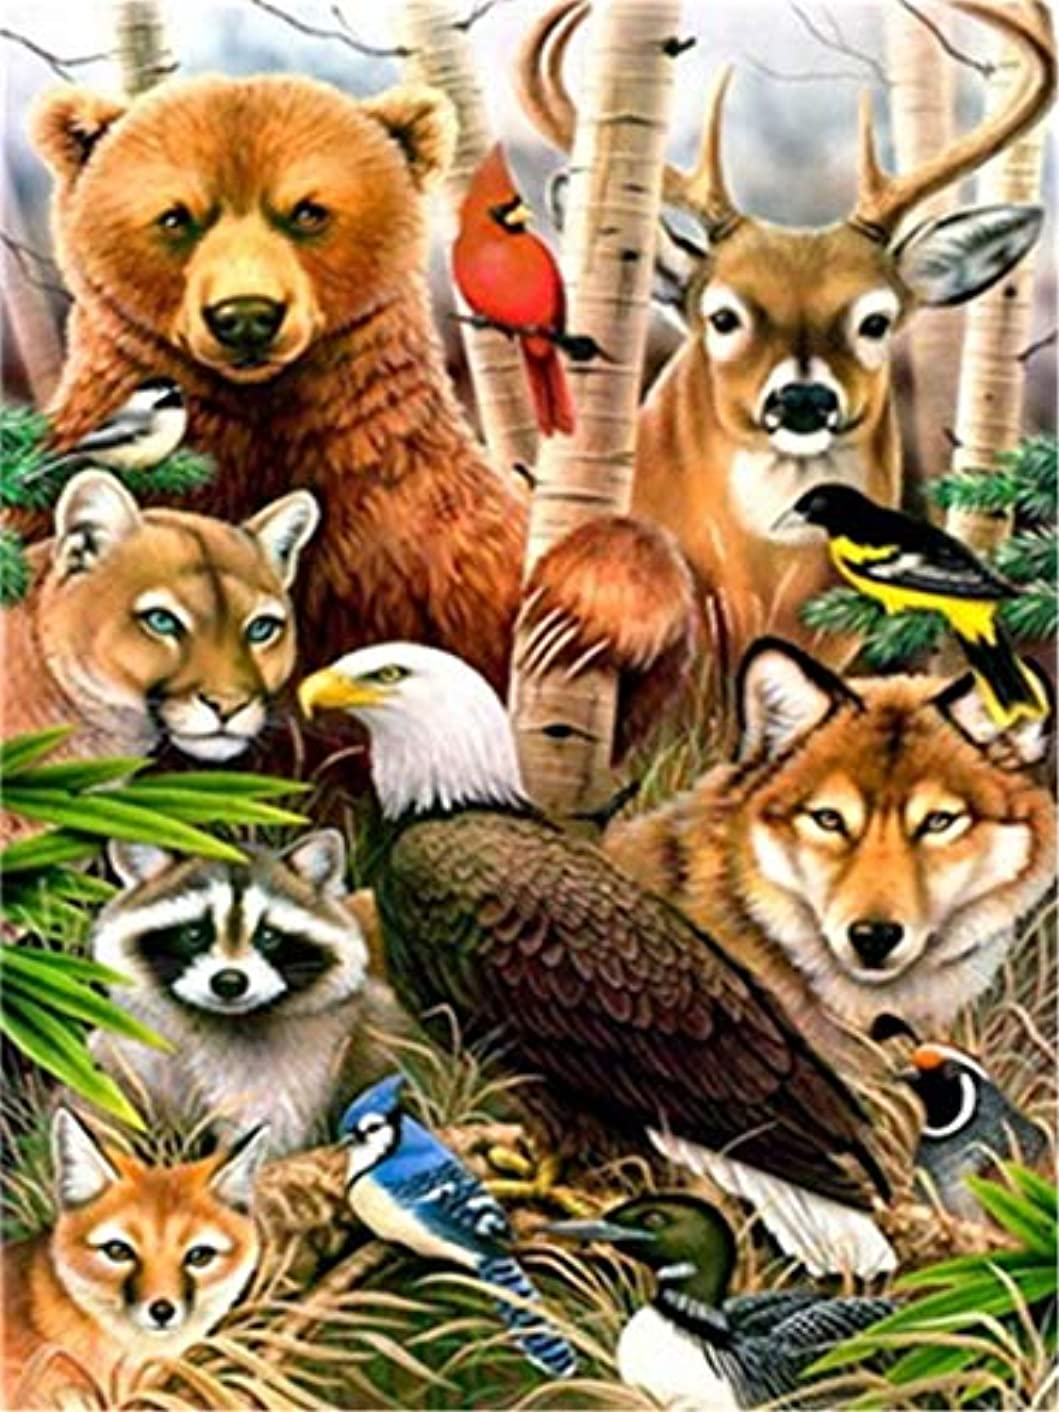 Paint by Numbers Kits DIY Oil Painting Home Decor Wall Value Gift - Animal World 16X20 Inch (Frame)